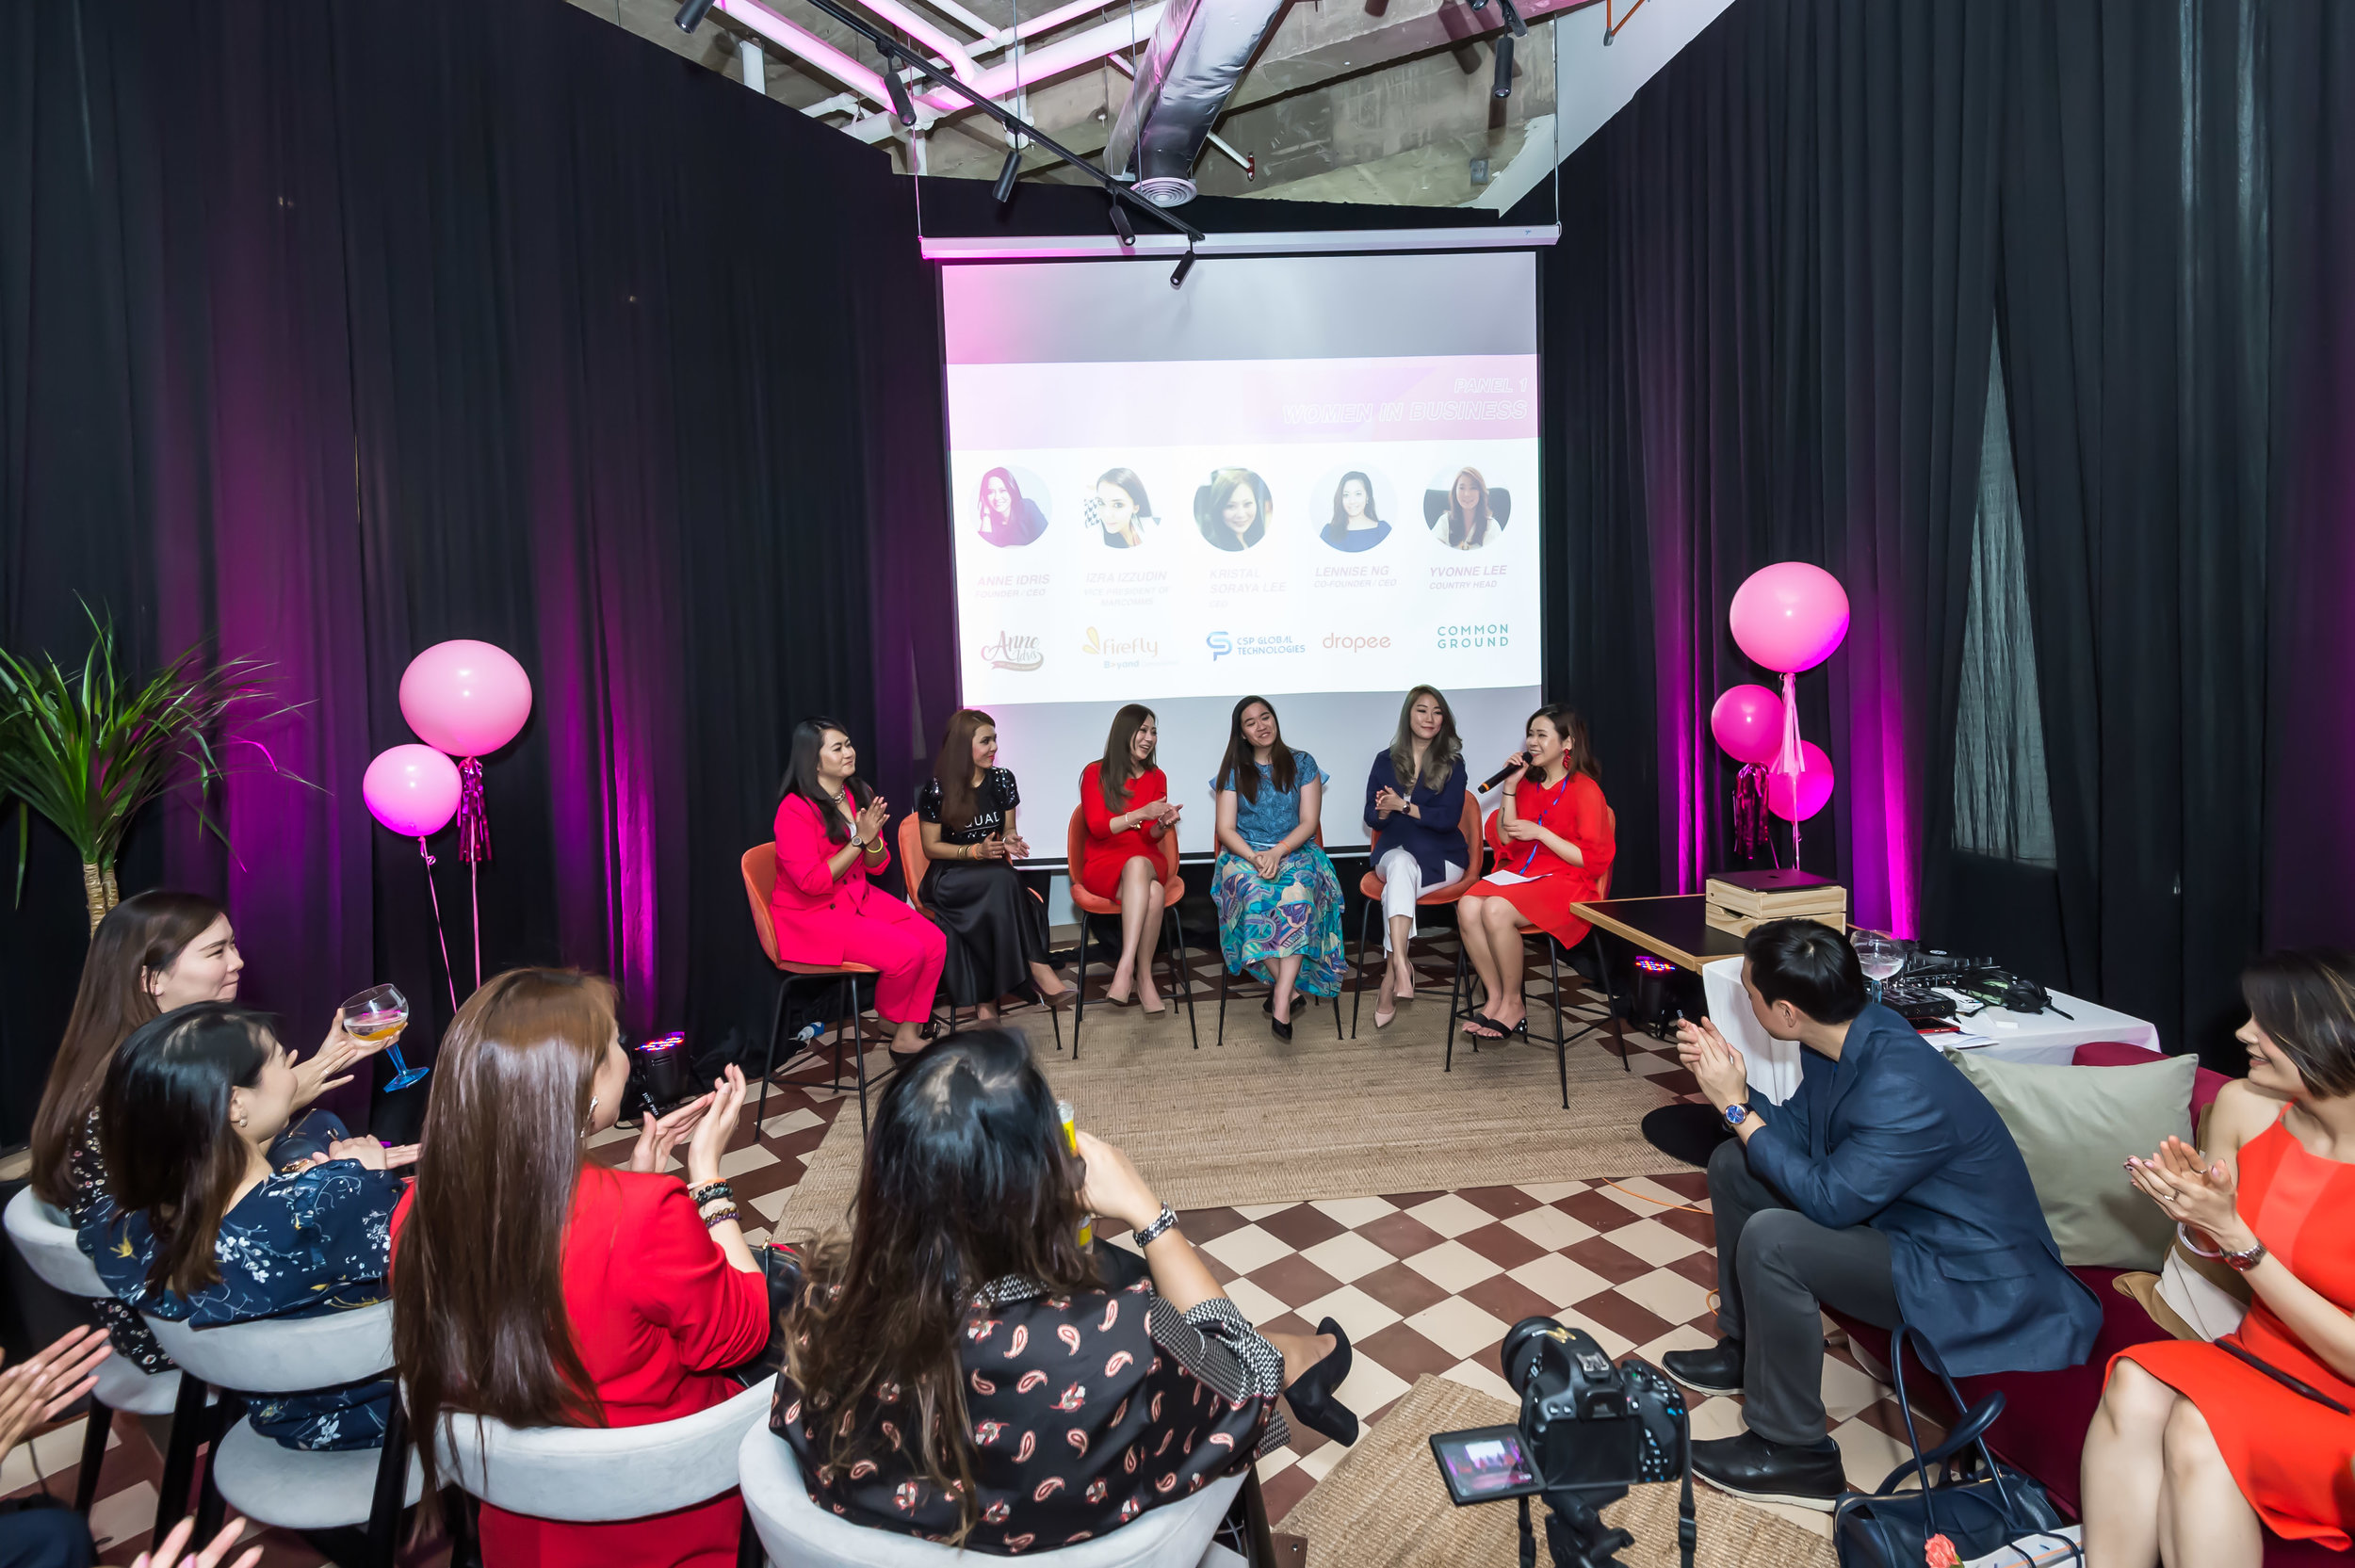 ANNE IDRIS  Founder/CEO of My Mum's Bakery  IZRA IZZUDDIN  Vice President, Marketing & Communications of Firefly KRISTAL  SORAYA LEE  CEO of CSP Global Technologies  LENNISE NG  Co-Founder/CEO of Dropee  YVONNE LEE  Country Head of Common Ground Moderated by  Melly Ling , Brand Manager of  Swingvy